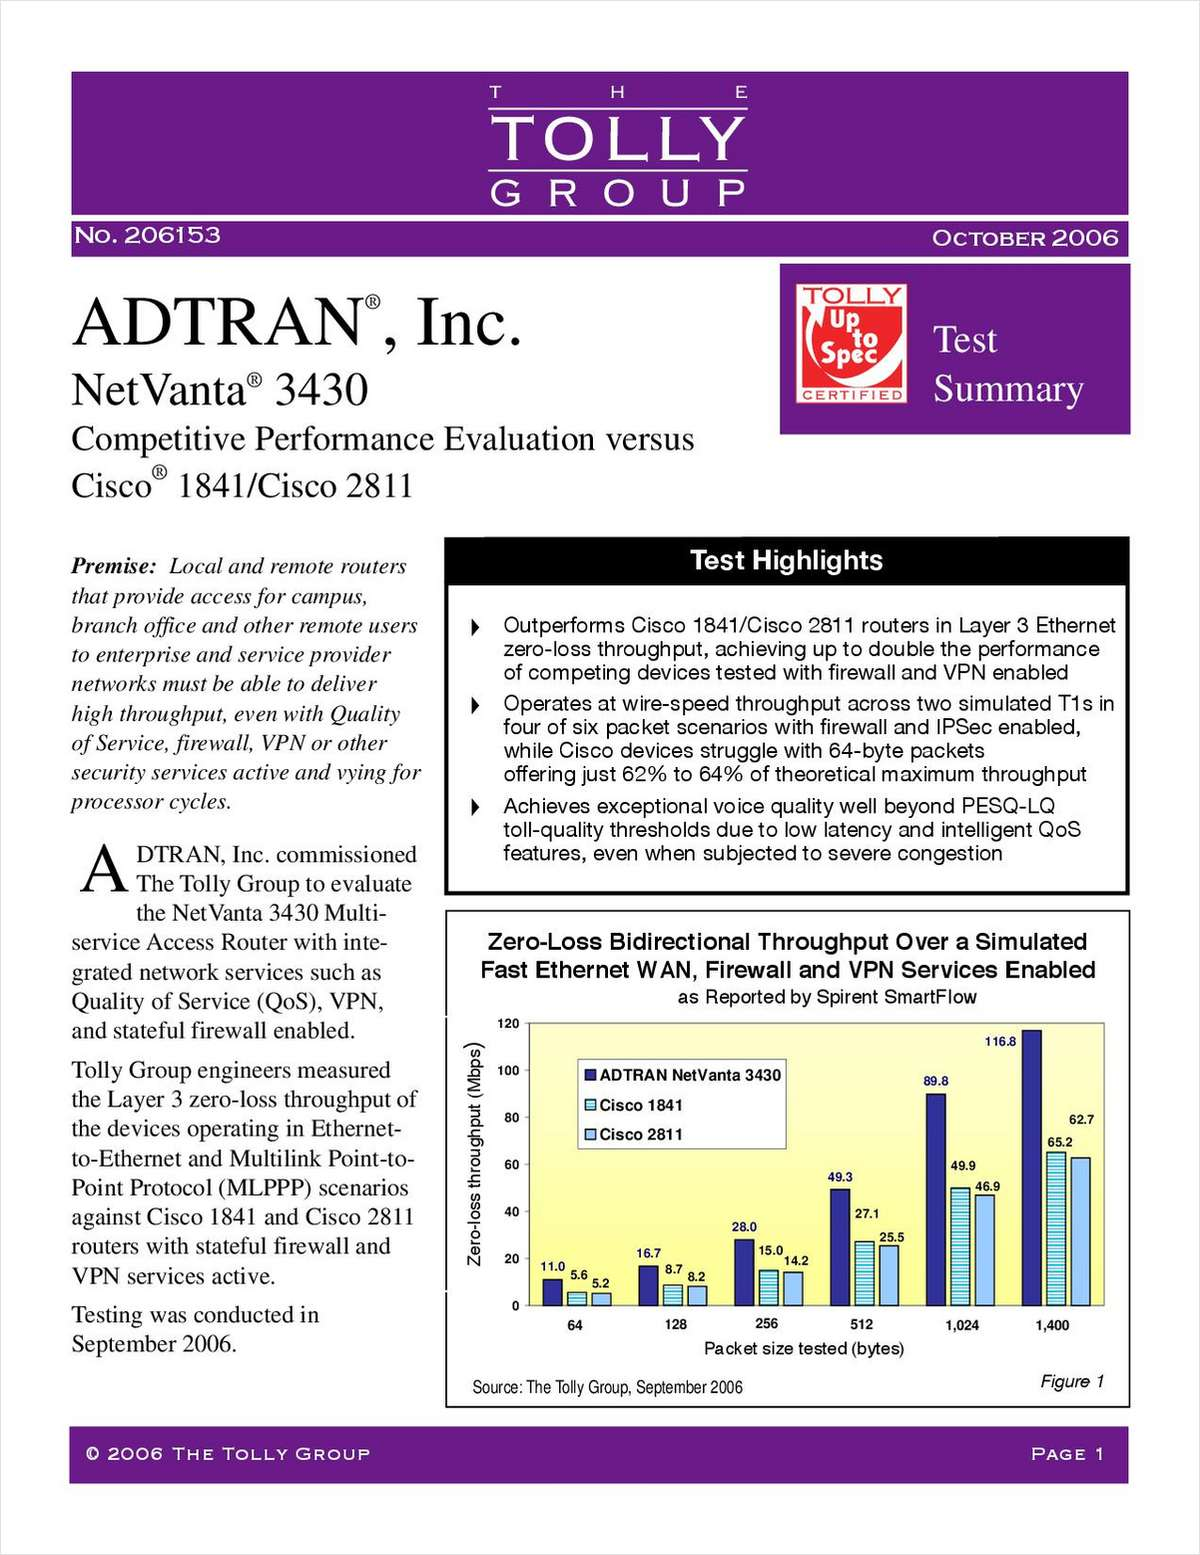 ADTRAN Outperforms Cisco in Tolly Group Tests